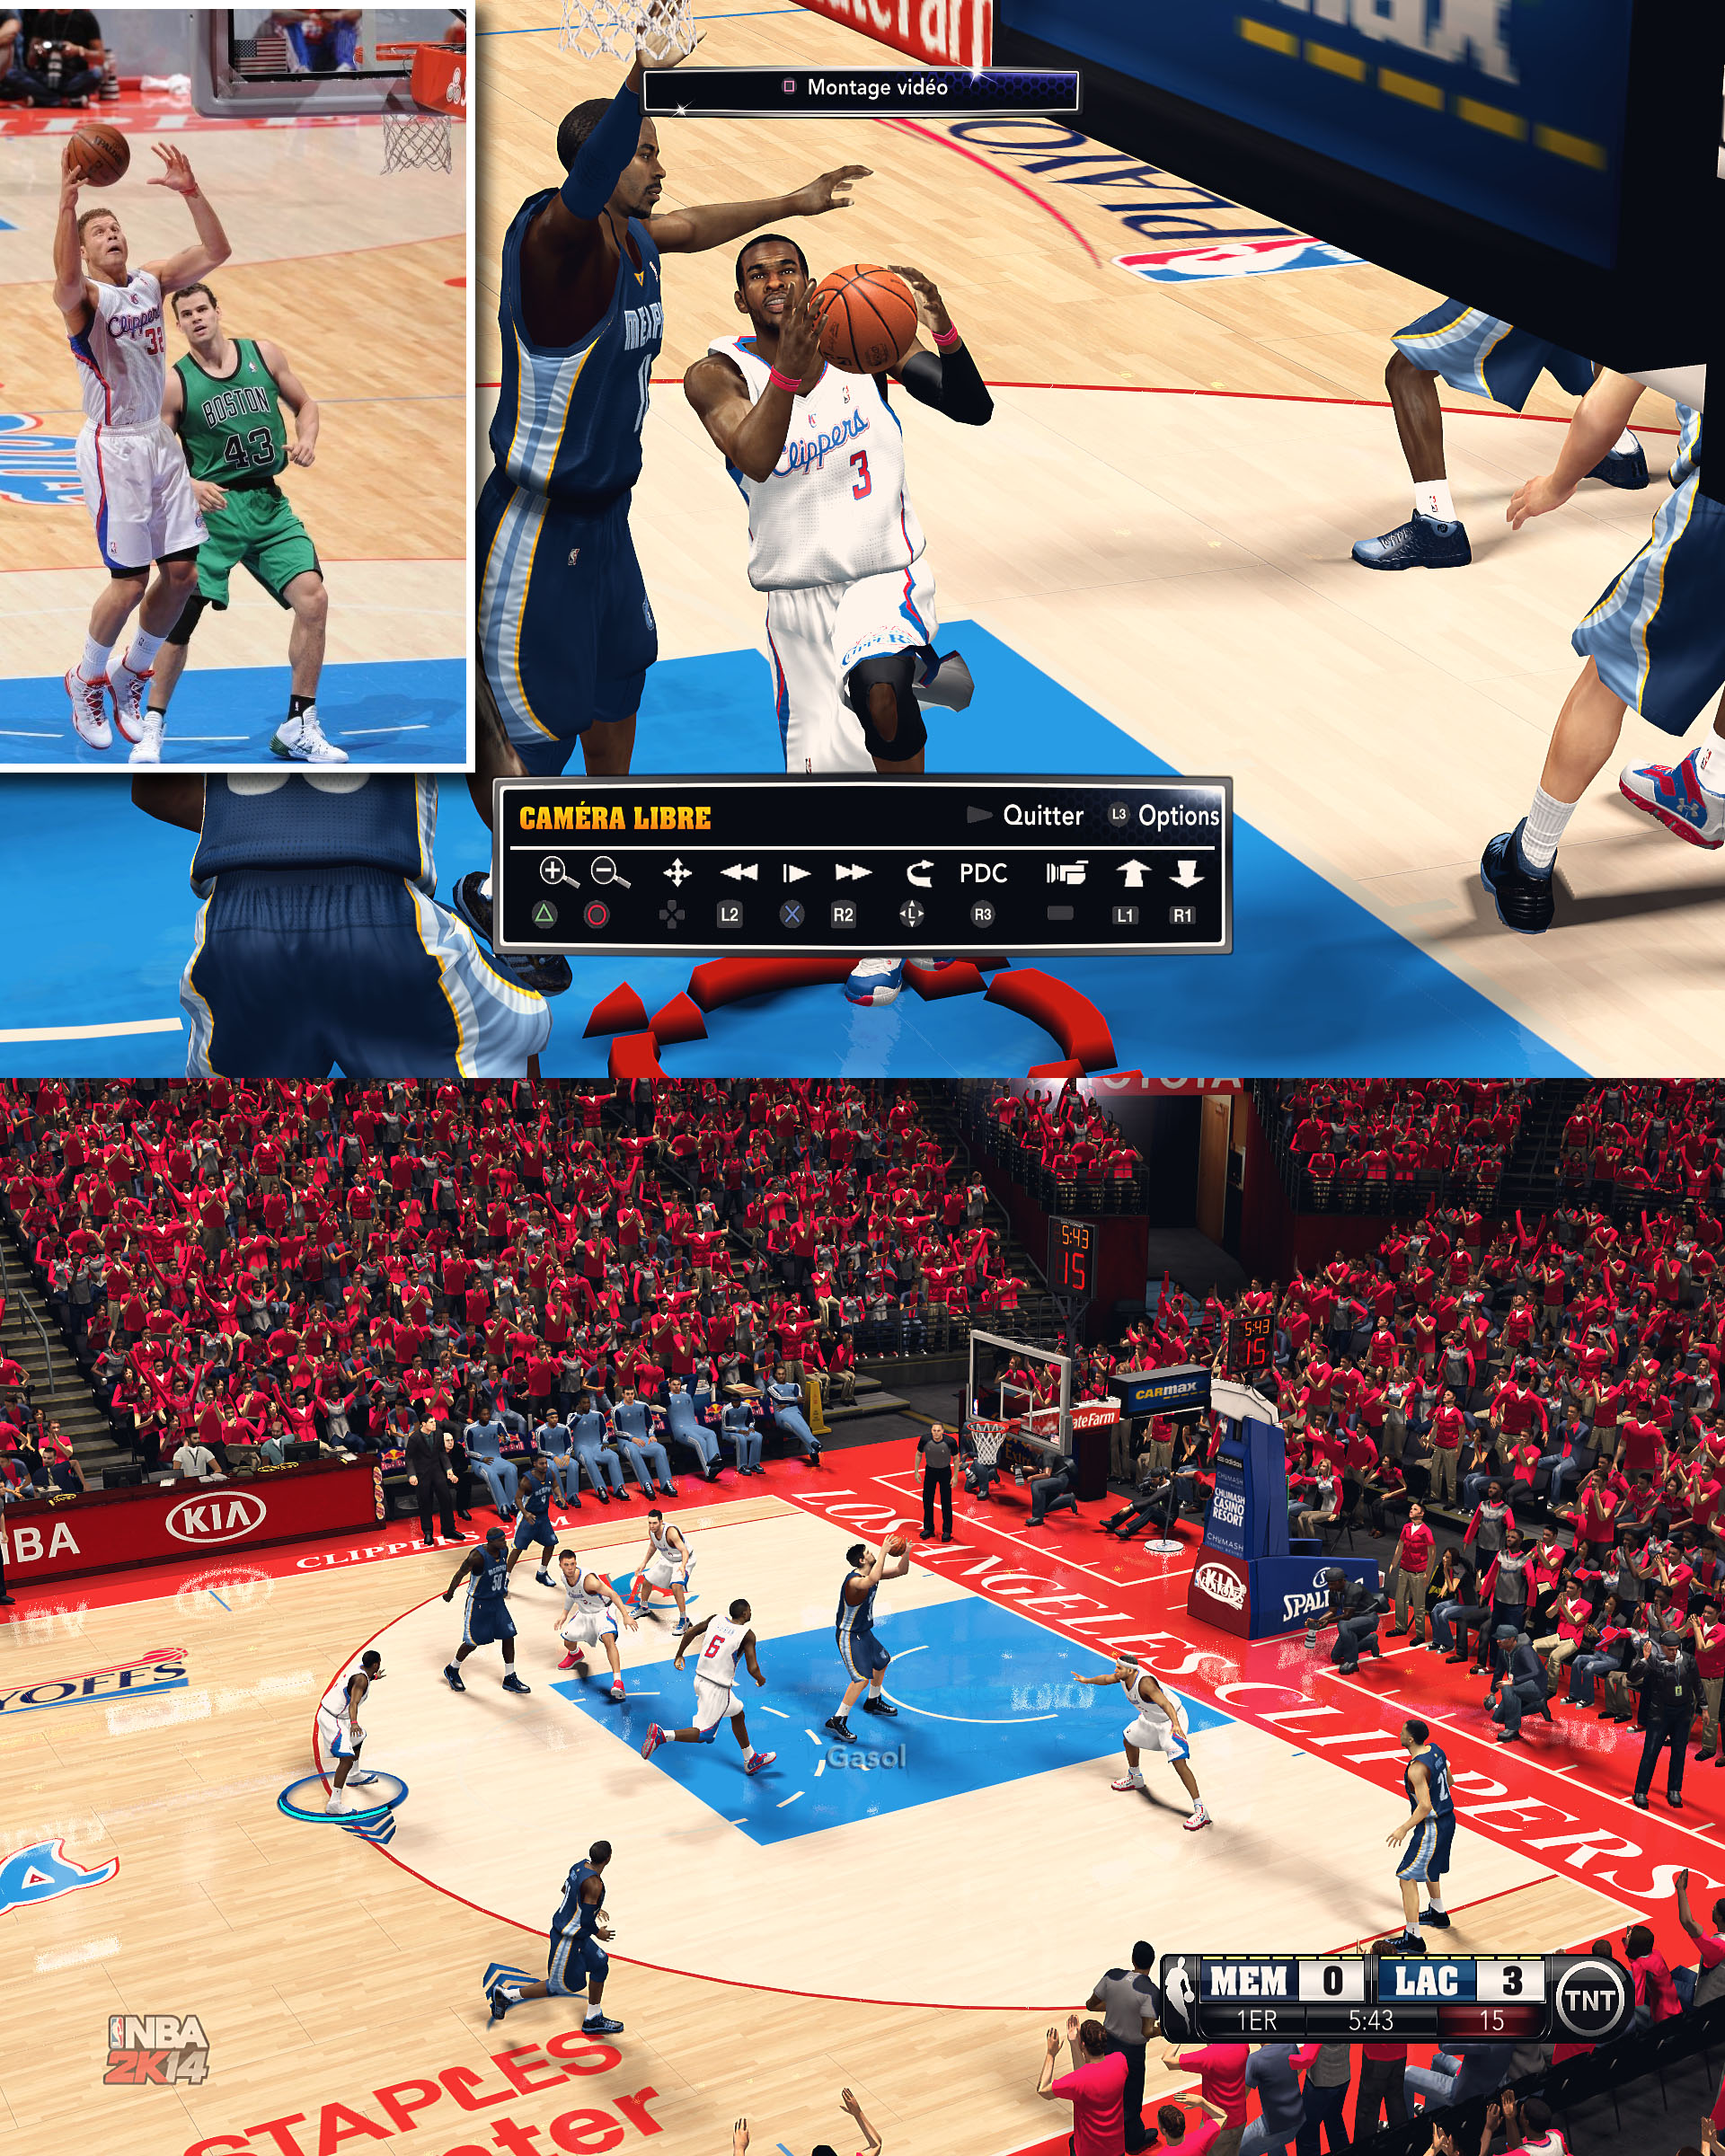 Los Angeles Clippers HD Court by stoeck